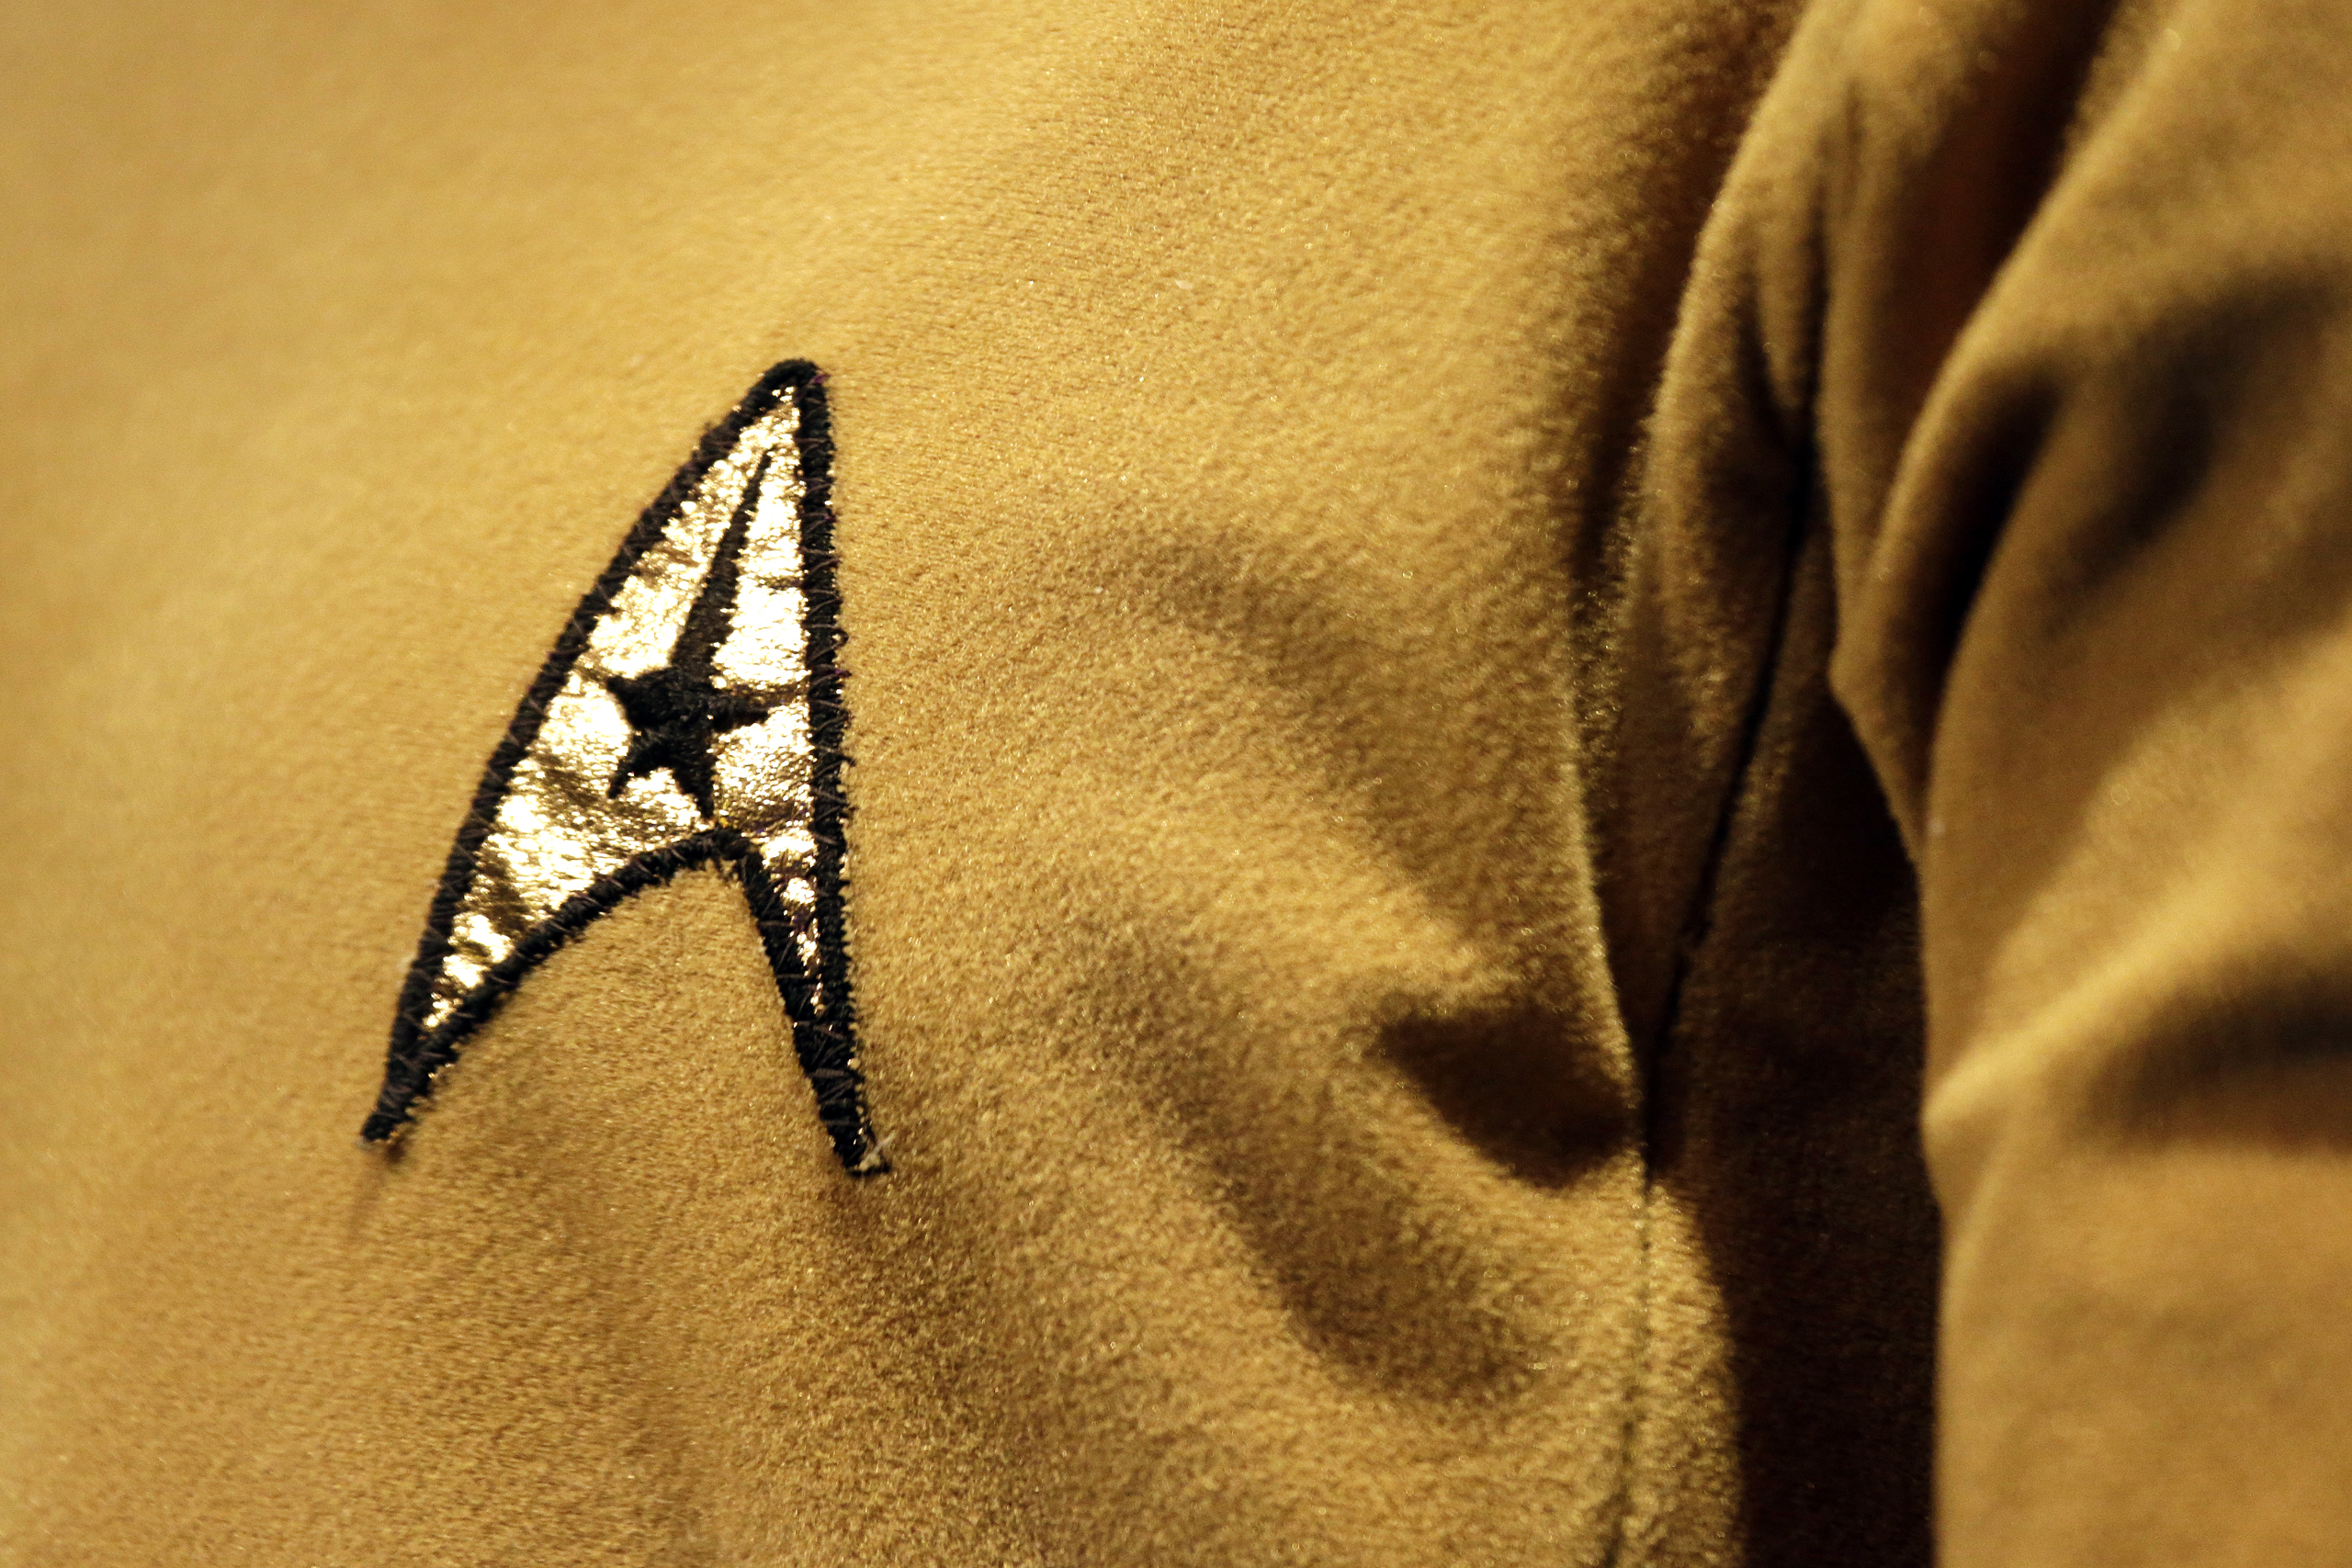 A Starfleet insignia appears on the original tunic worn by Capt. James T. Kirk, played by William Shatner at the EMP Museum, in Seattle, May 18, 2016.